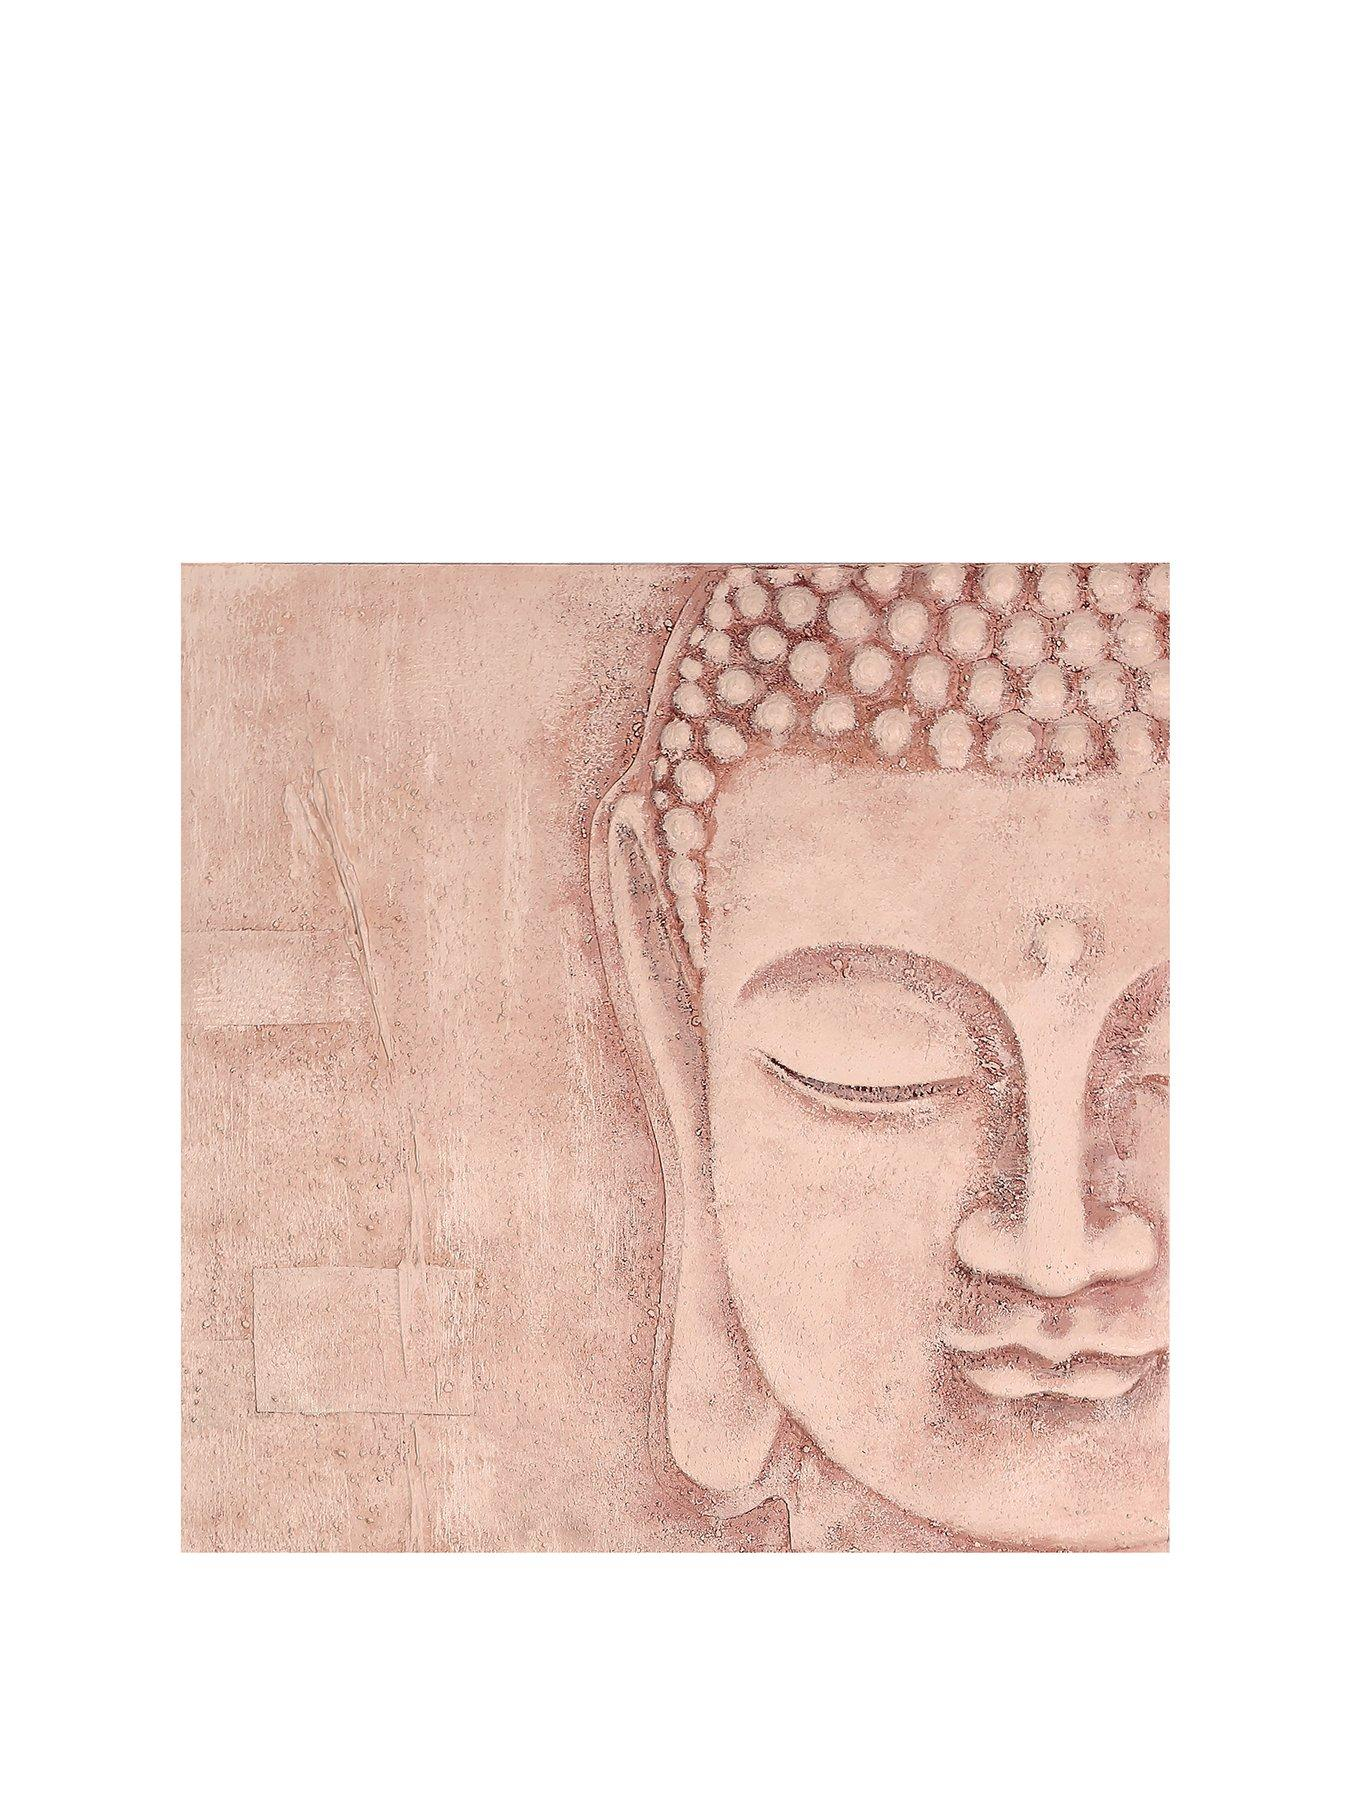 Black /& Gold Buddha with 3D Textured Detail Canvas Wall Art Picture 57cm x 57cm